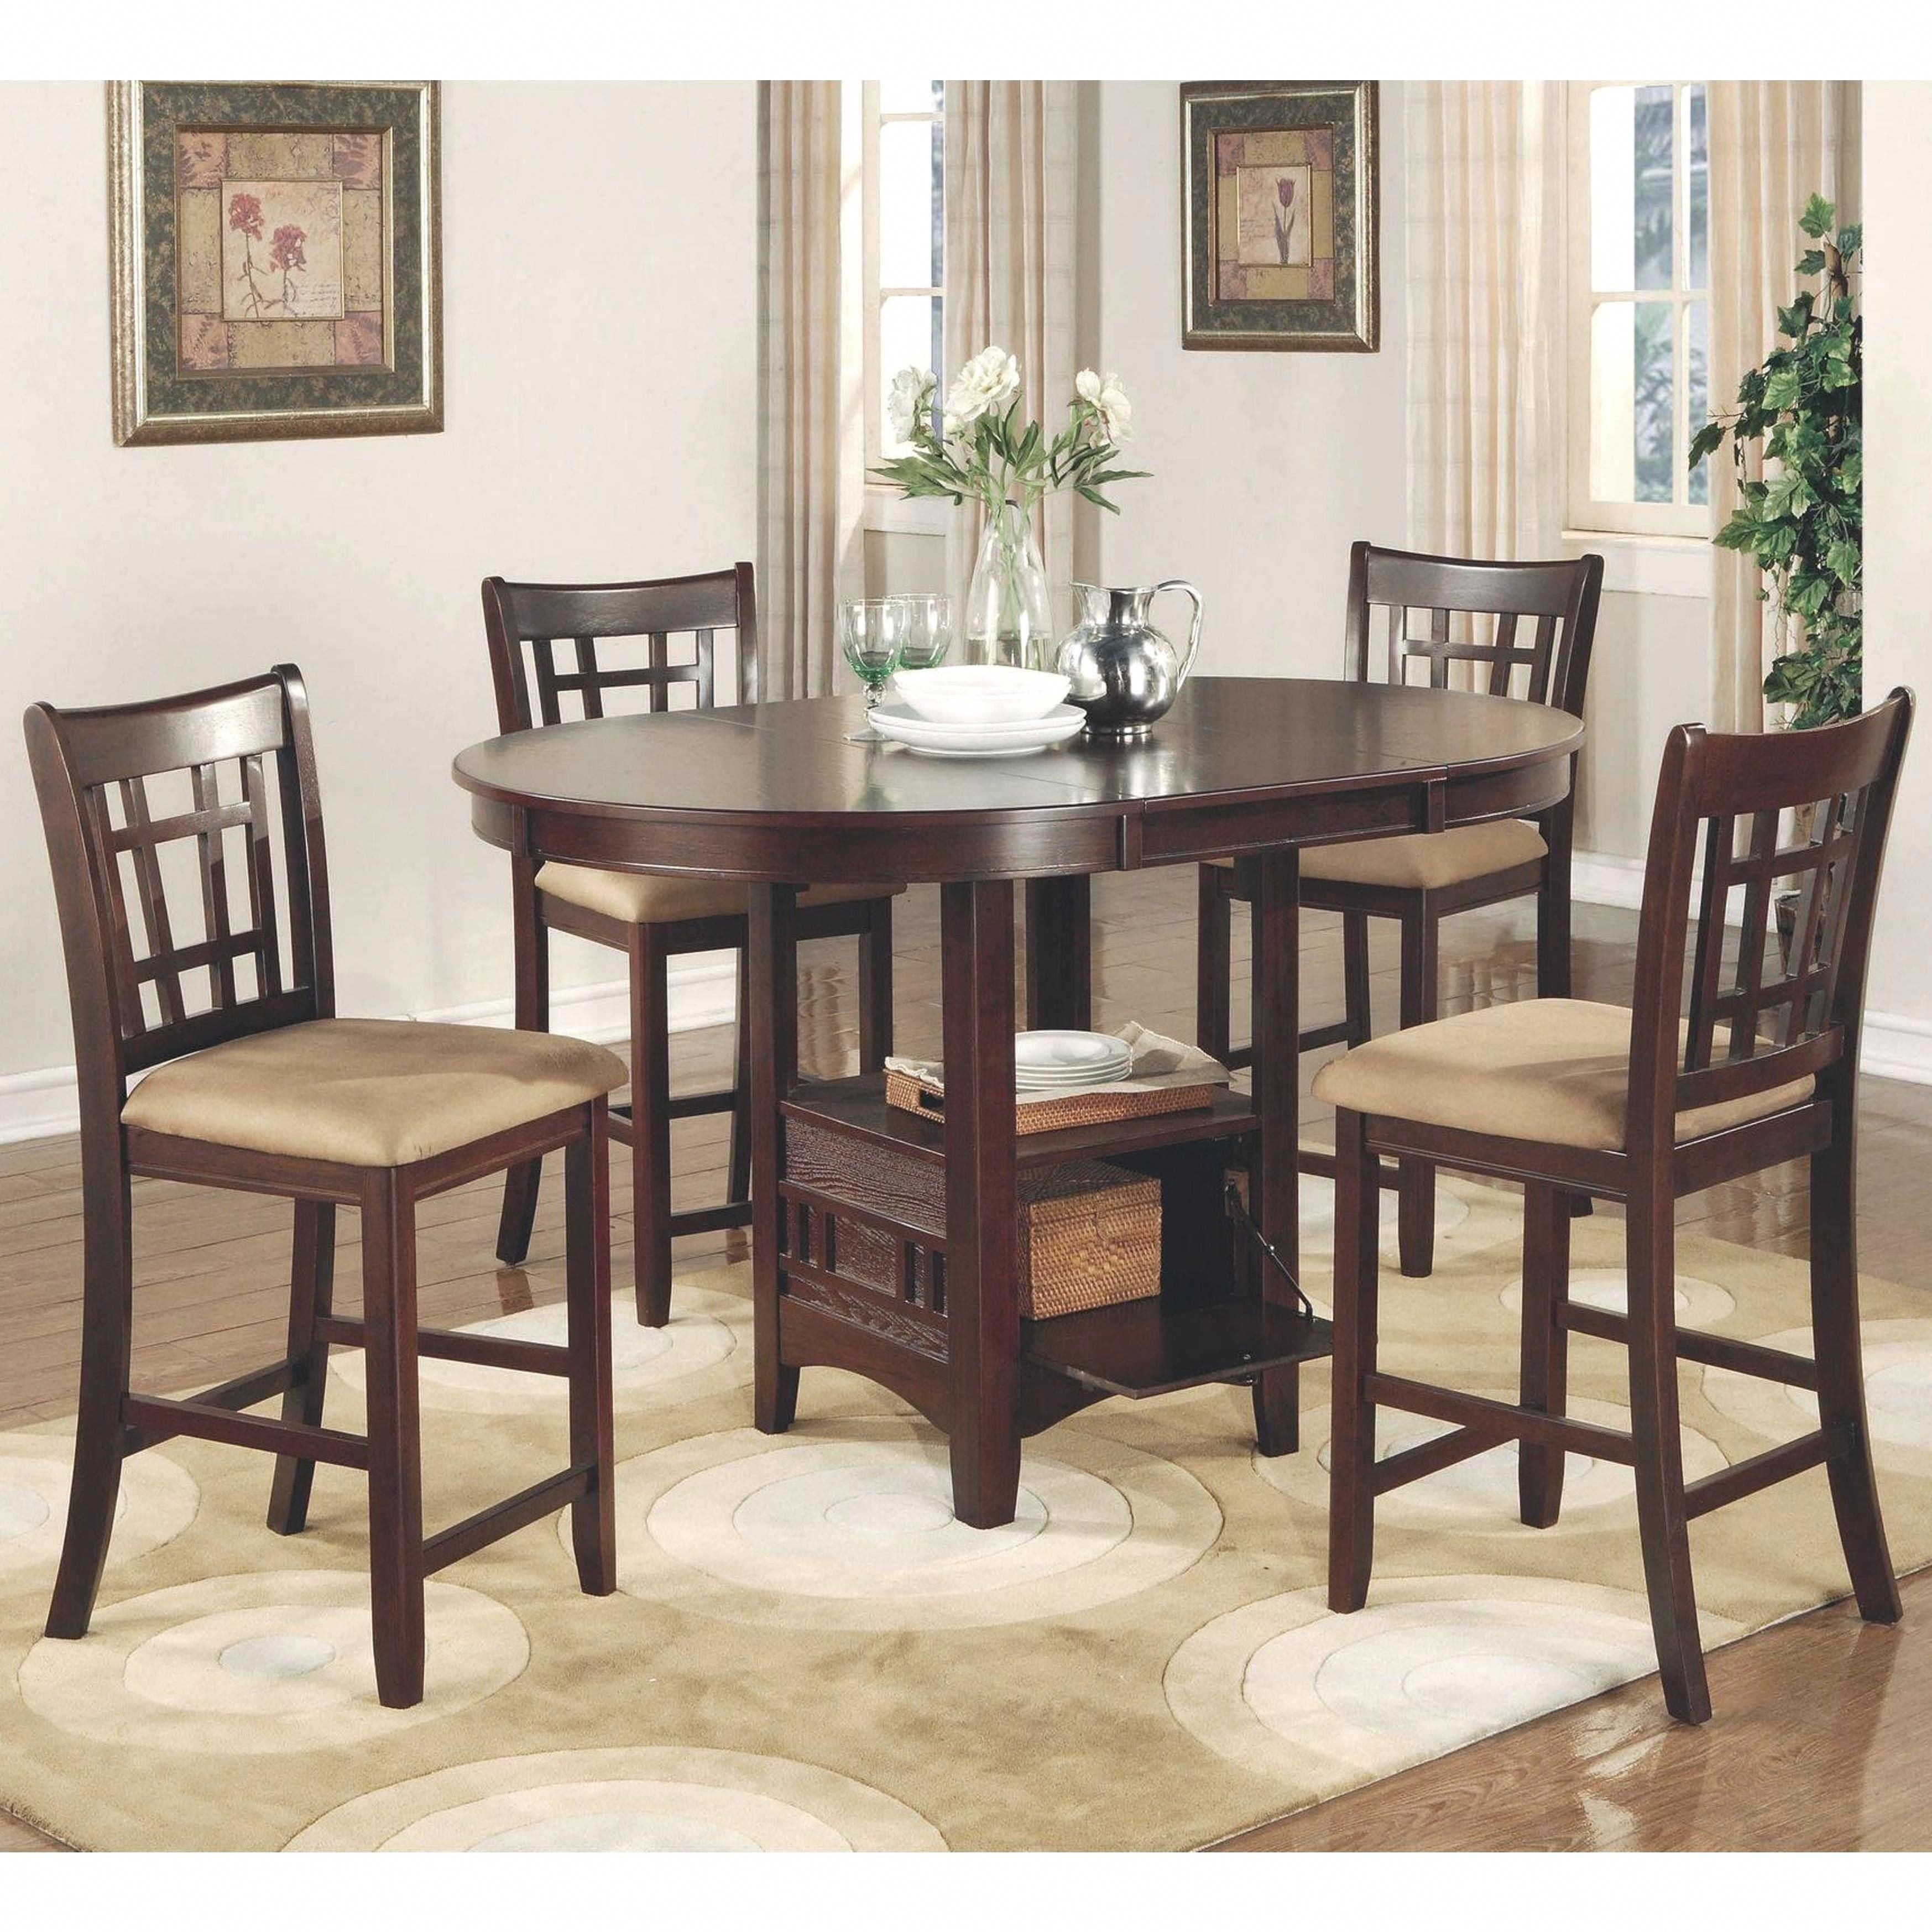 Azalea Warm Brown Counter Height Dining Set (1 Table – 6 Stools In Current Craftsman 7 Piece Rectangle Extension Dining Sets With Side Chairs (Image 4 of 20)